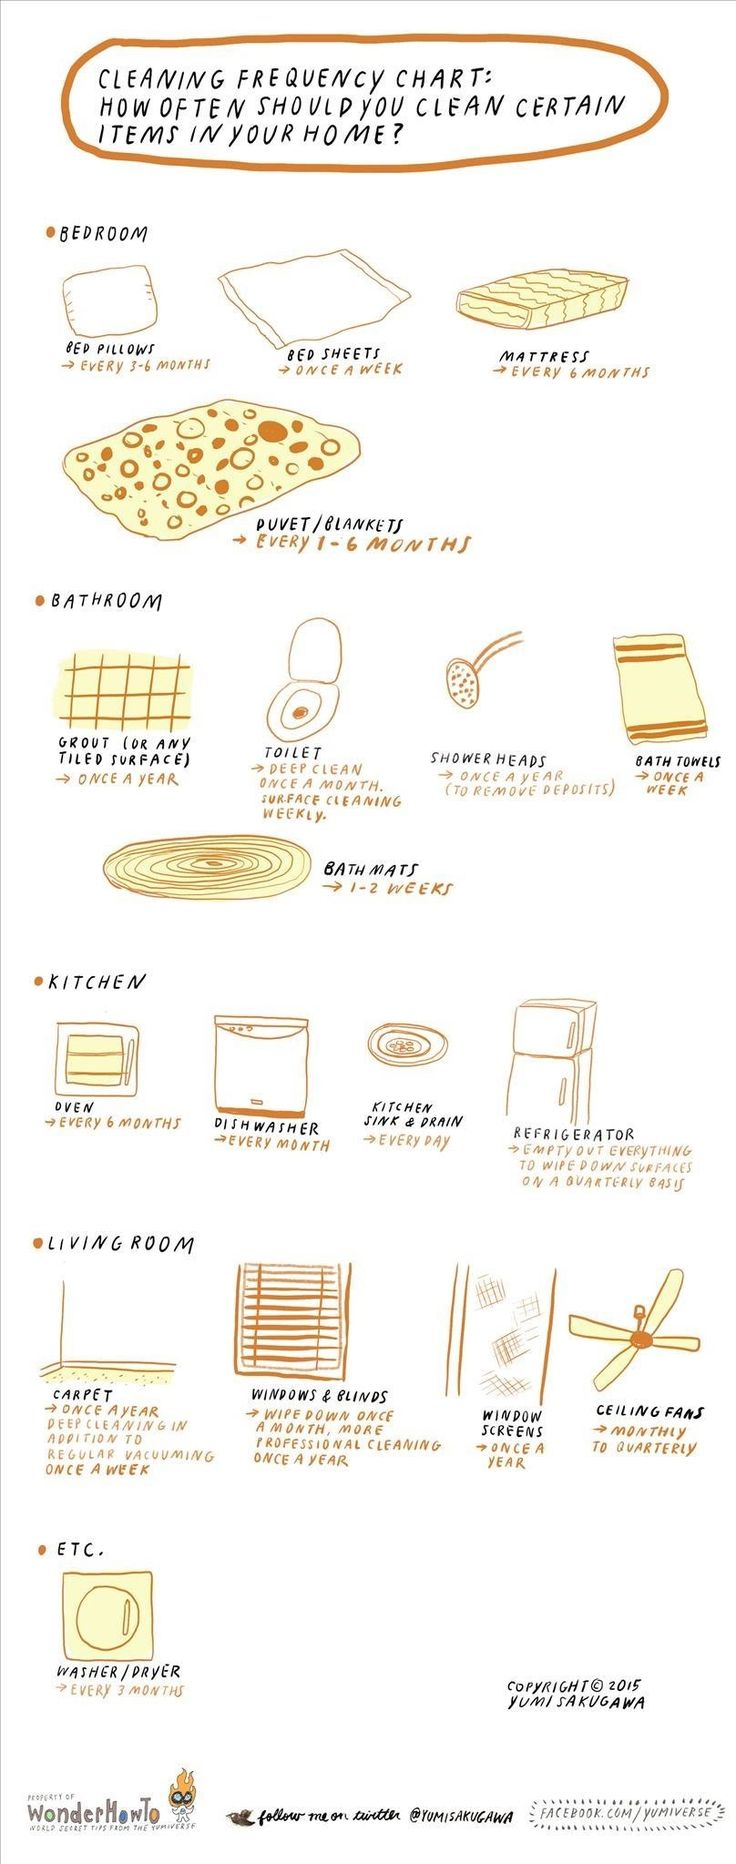 Cleaning Frequency Chart: How Often Should You Clean Certain Items in Your Home? « The Secret Yumiverse